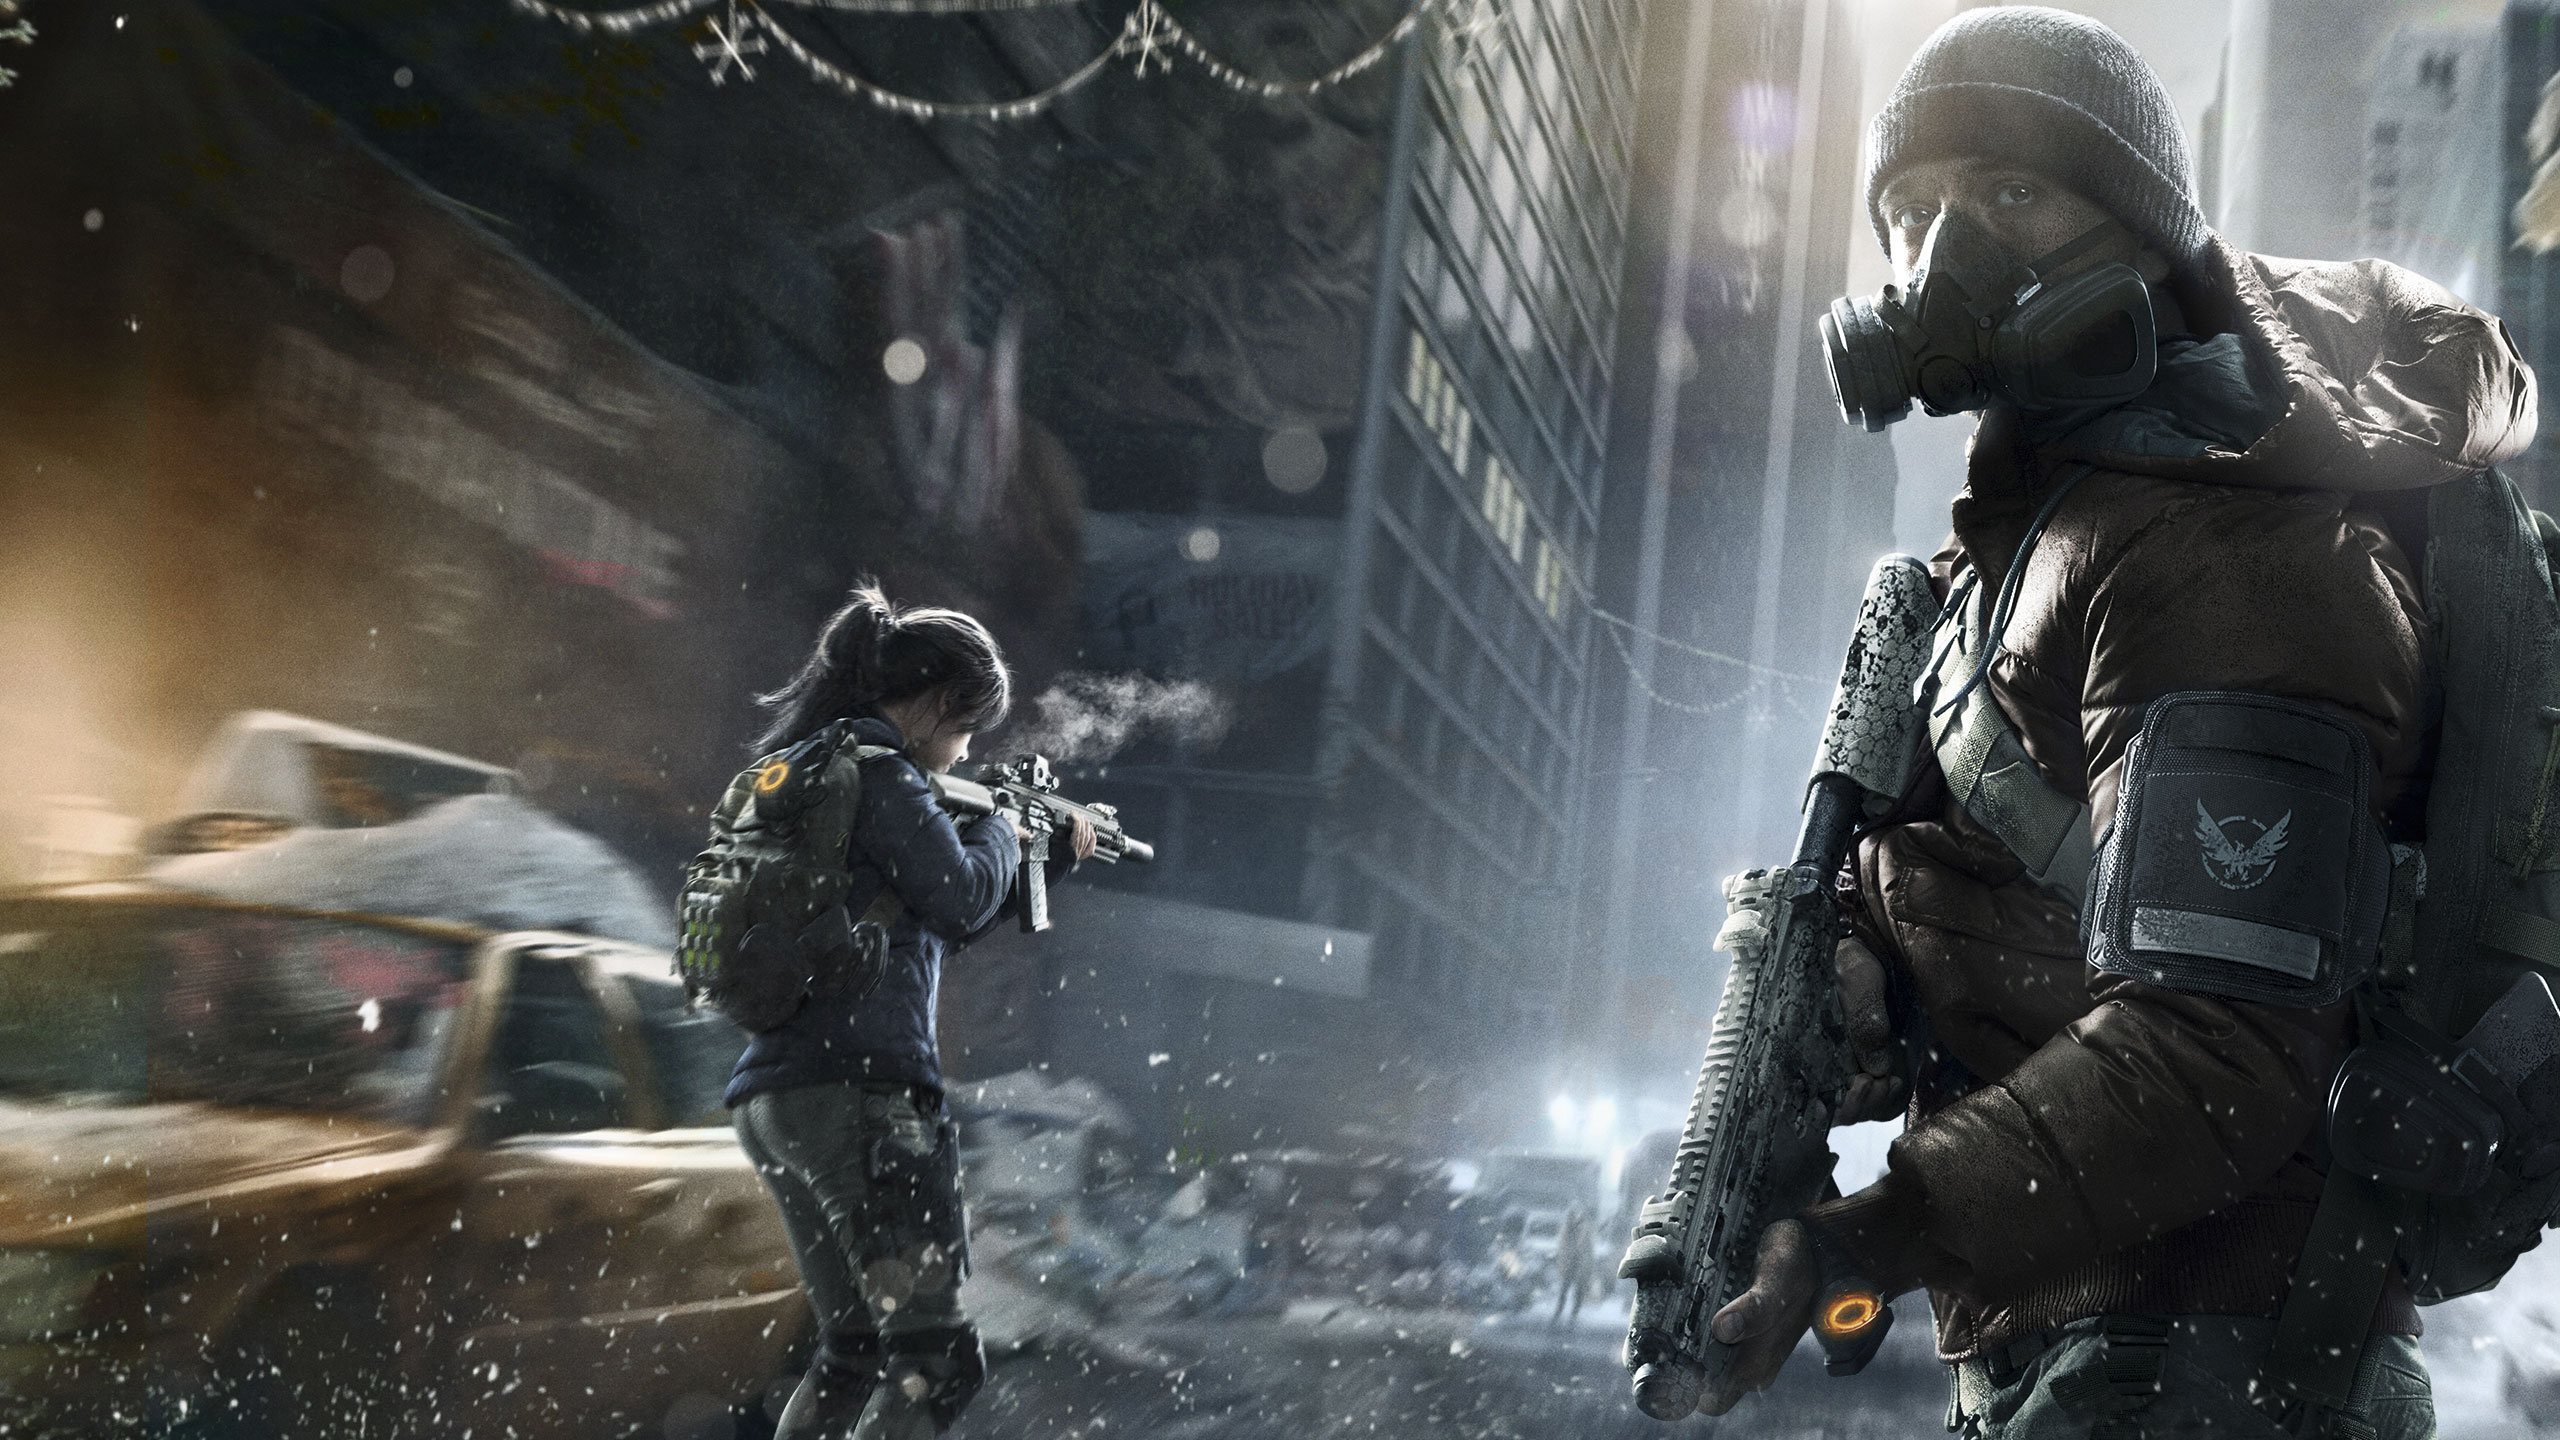 Download Hd 2560x1440 Tom Clancys The Division Computer Wallpaper ID450076 For Free